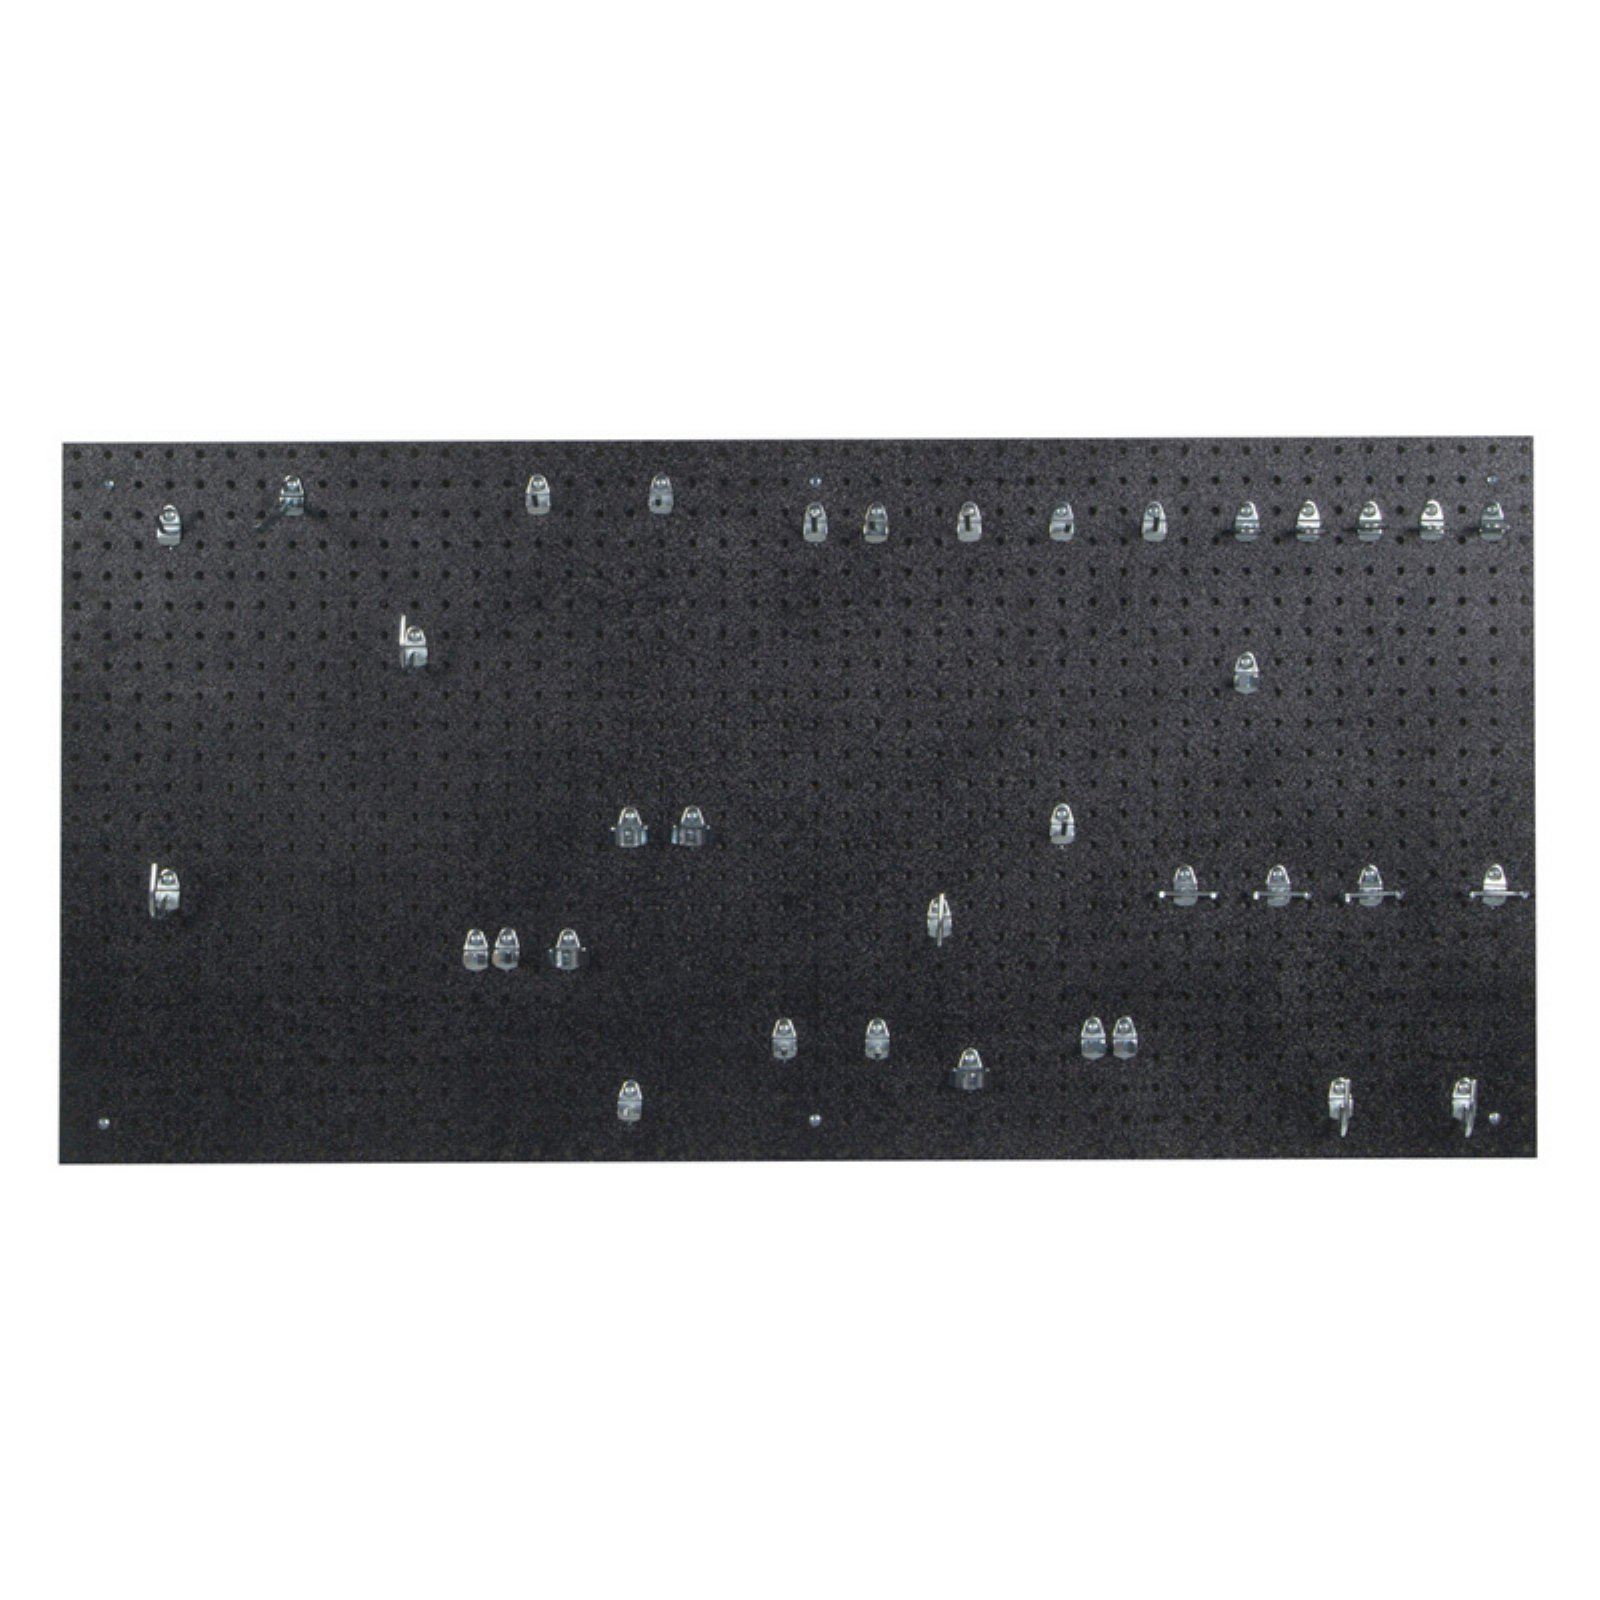 24 In. W x 48 In. H x 3/16 In. D Black Polyethylene Pegboards Matte Front Texture with 36 pc. Locking Hook Assortment